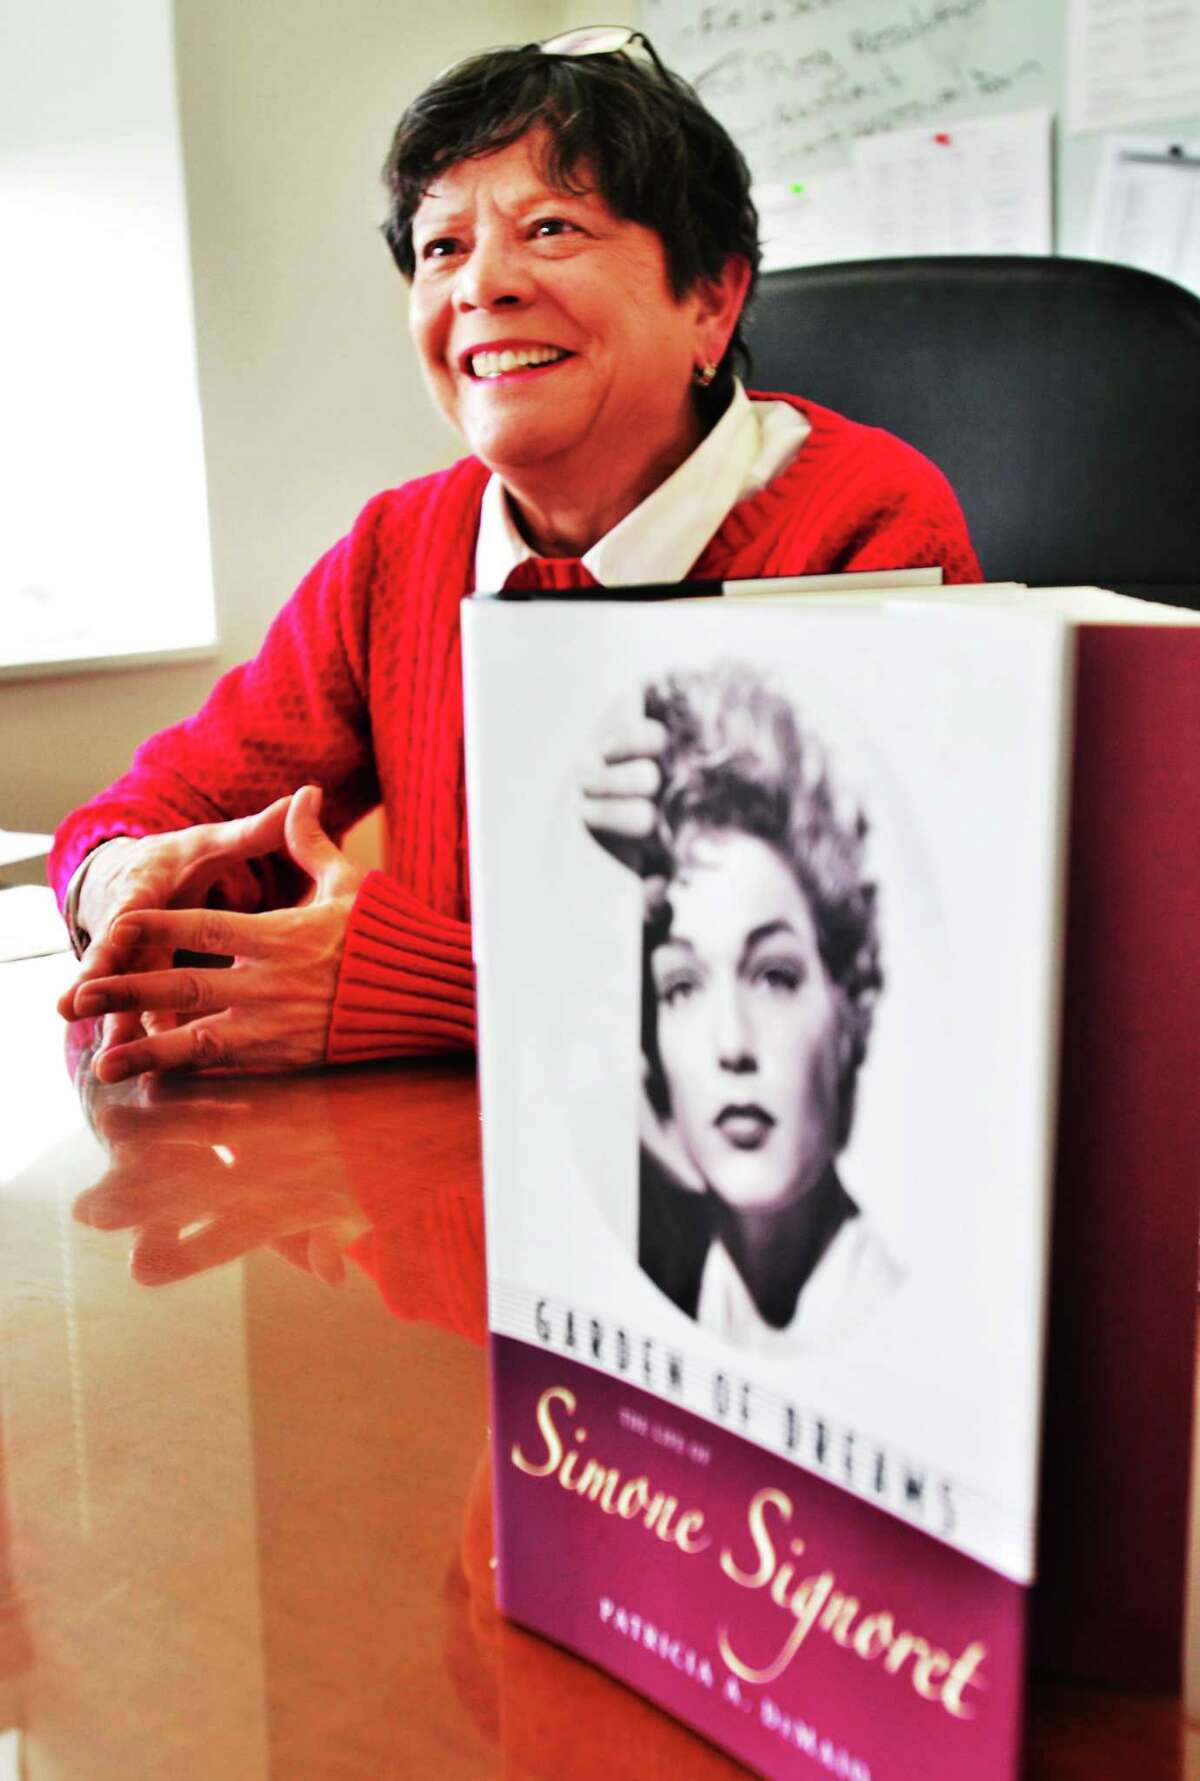 (Melanie Stengel ó New Haven Register) New Haven Public School grant coordinator, Pat DeMaio, has gotten her first book published 1/15. it is a biography of Simone Signoret.